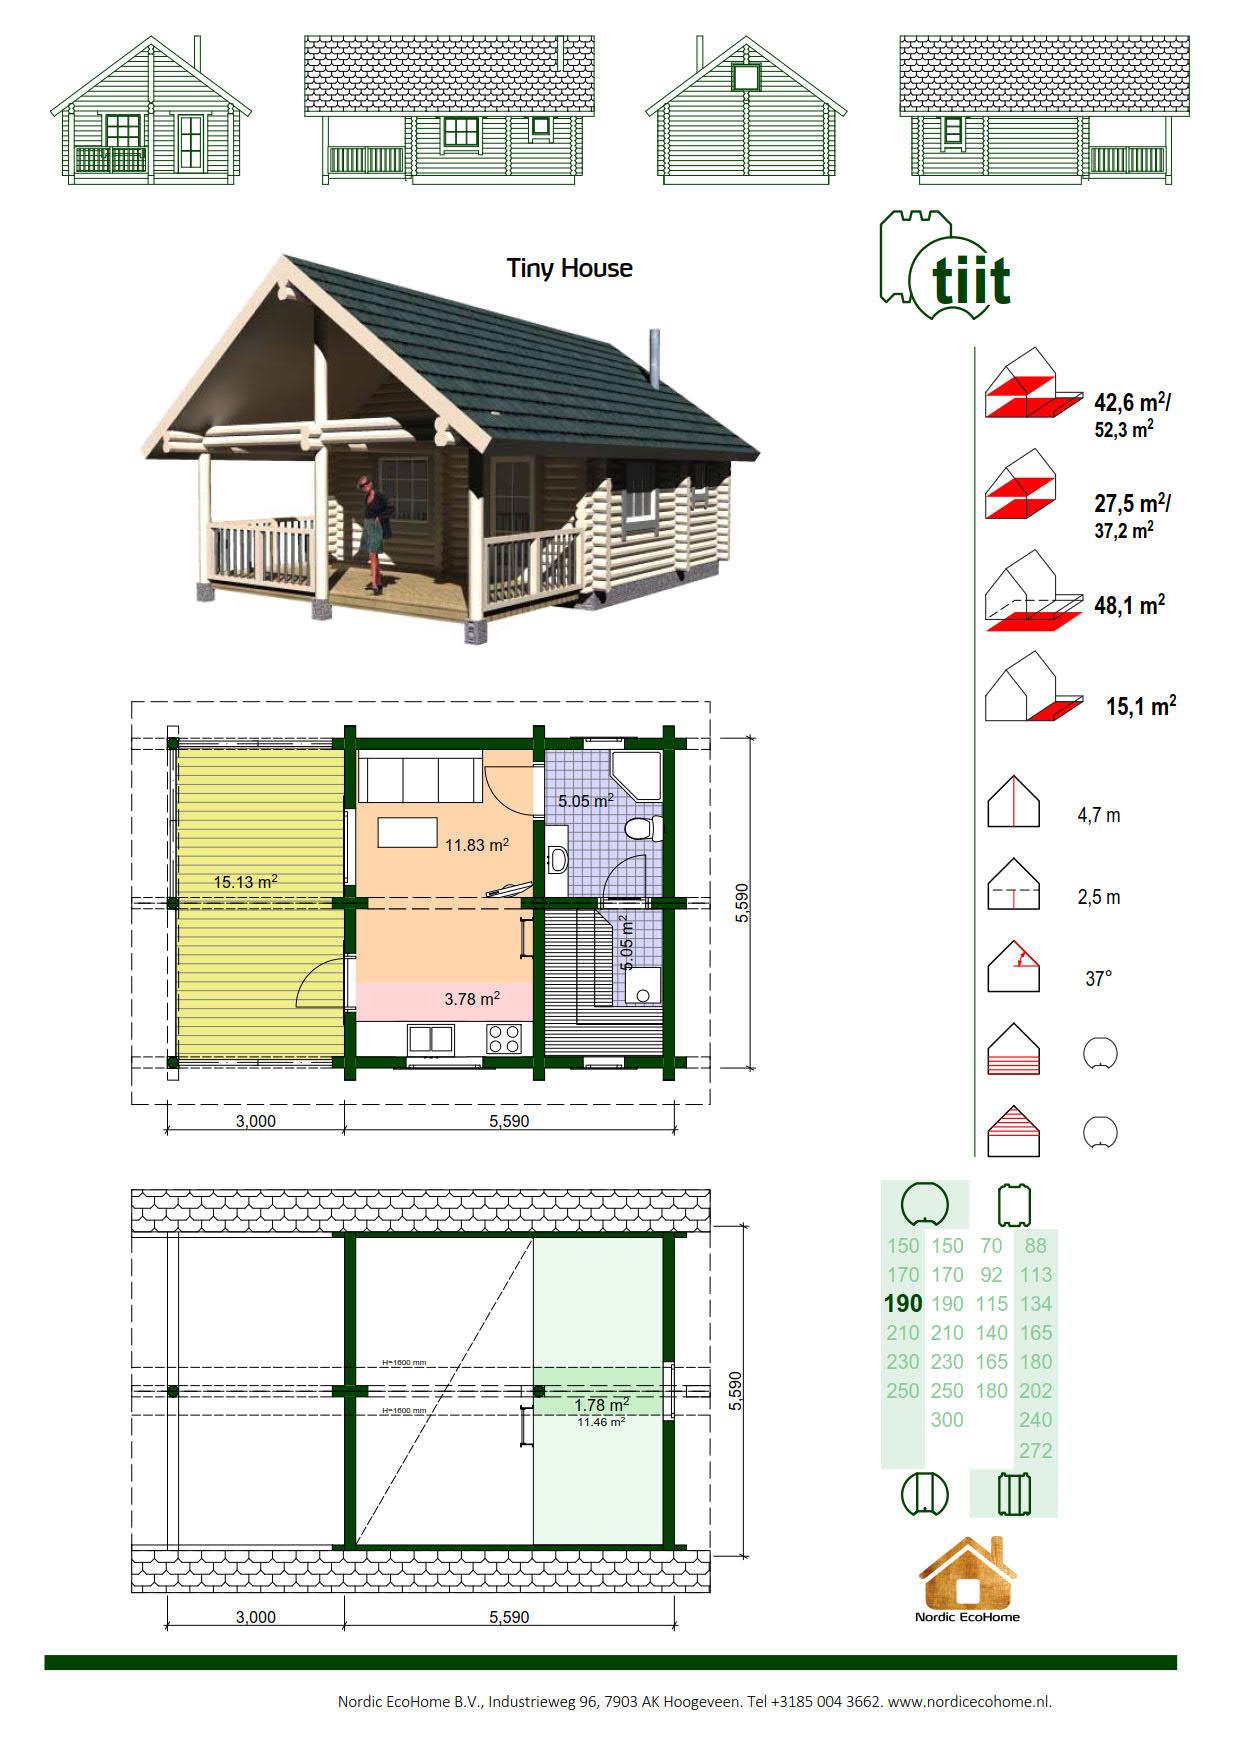 Nordic EcoHome TIIT